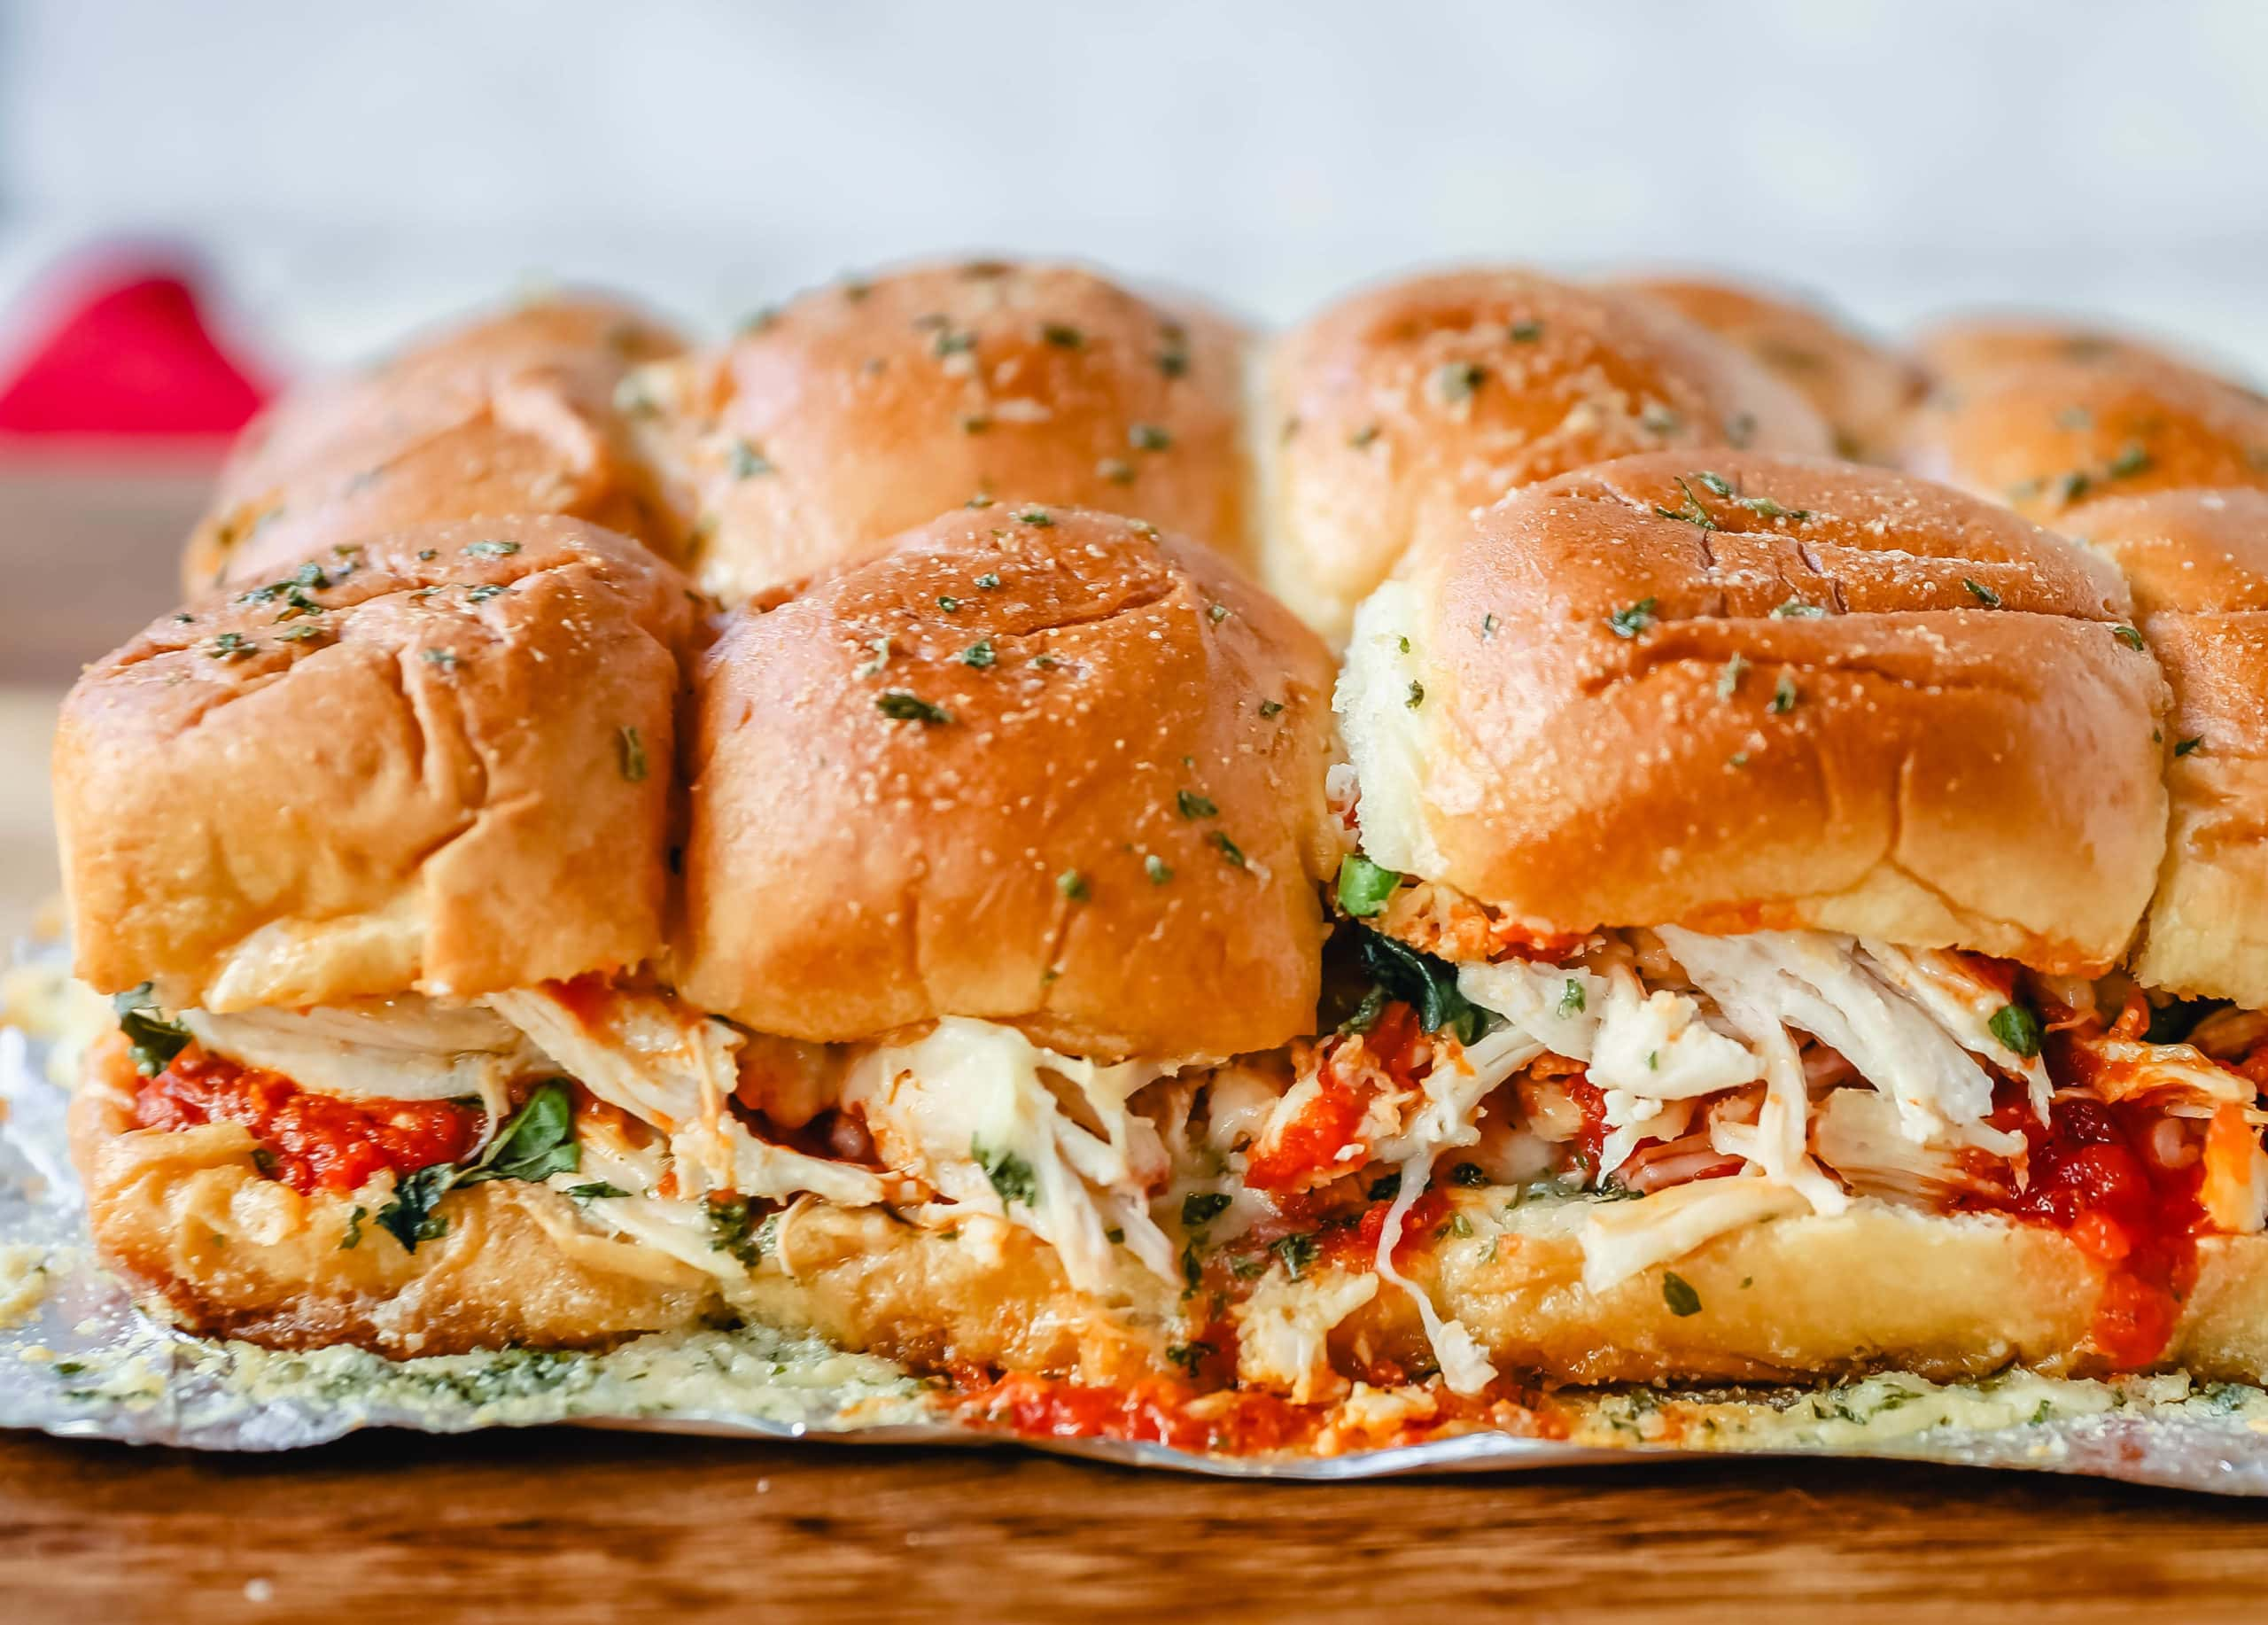 Baked Chicken Parm Sliders Chicken topped with a fresh marinara sauce topped with fresh mozzarella cheese and baked on Hawaiian sweet rolls and slathered with garlic butter. www.modernhoney.com #italian